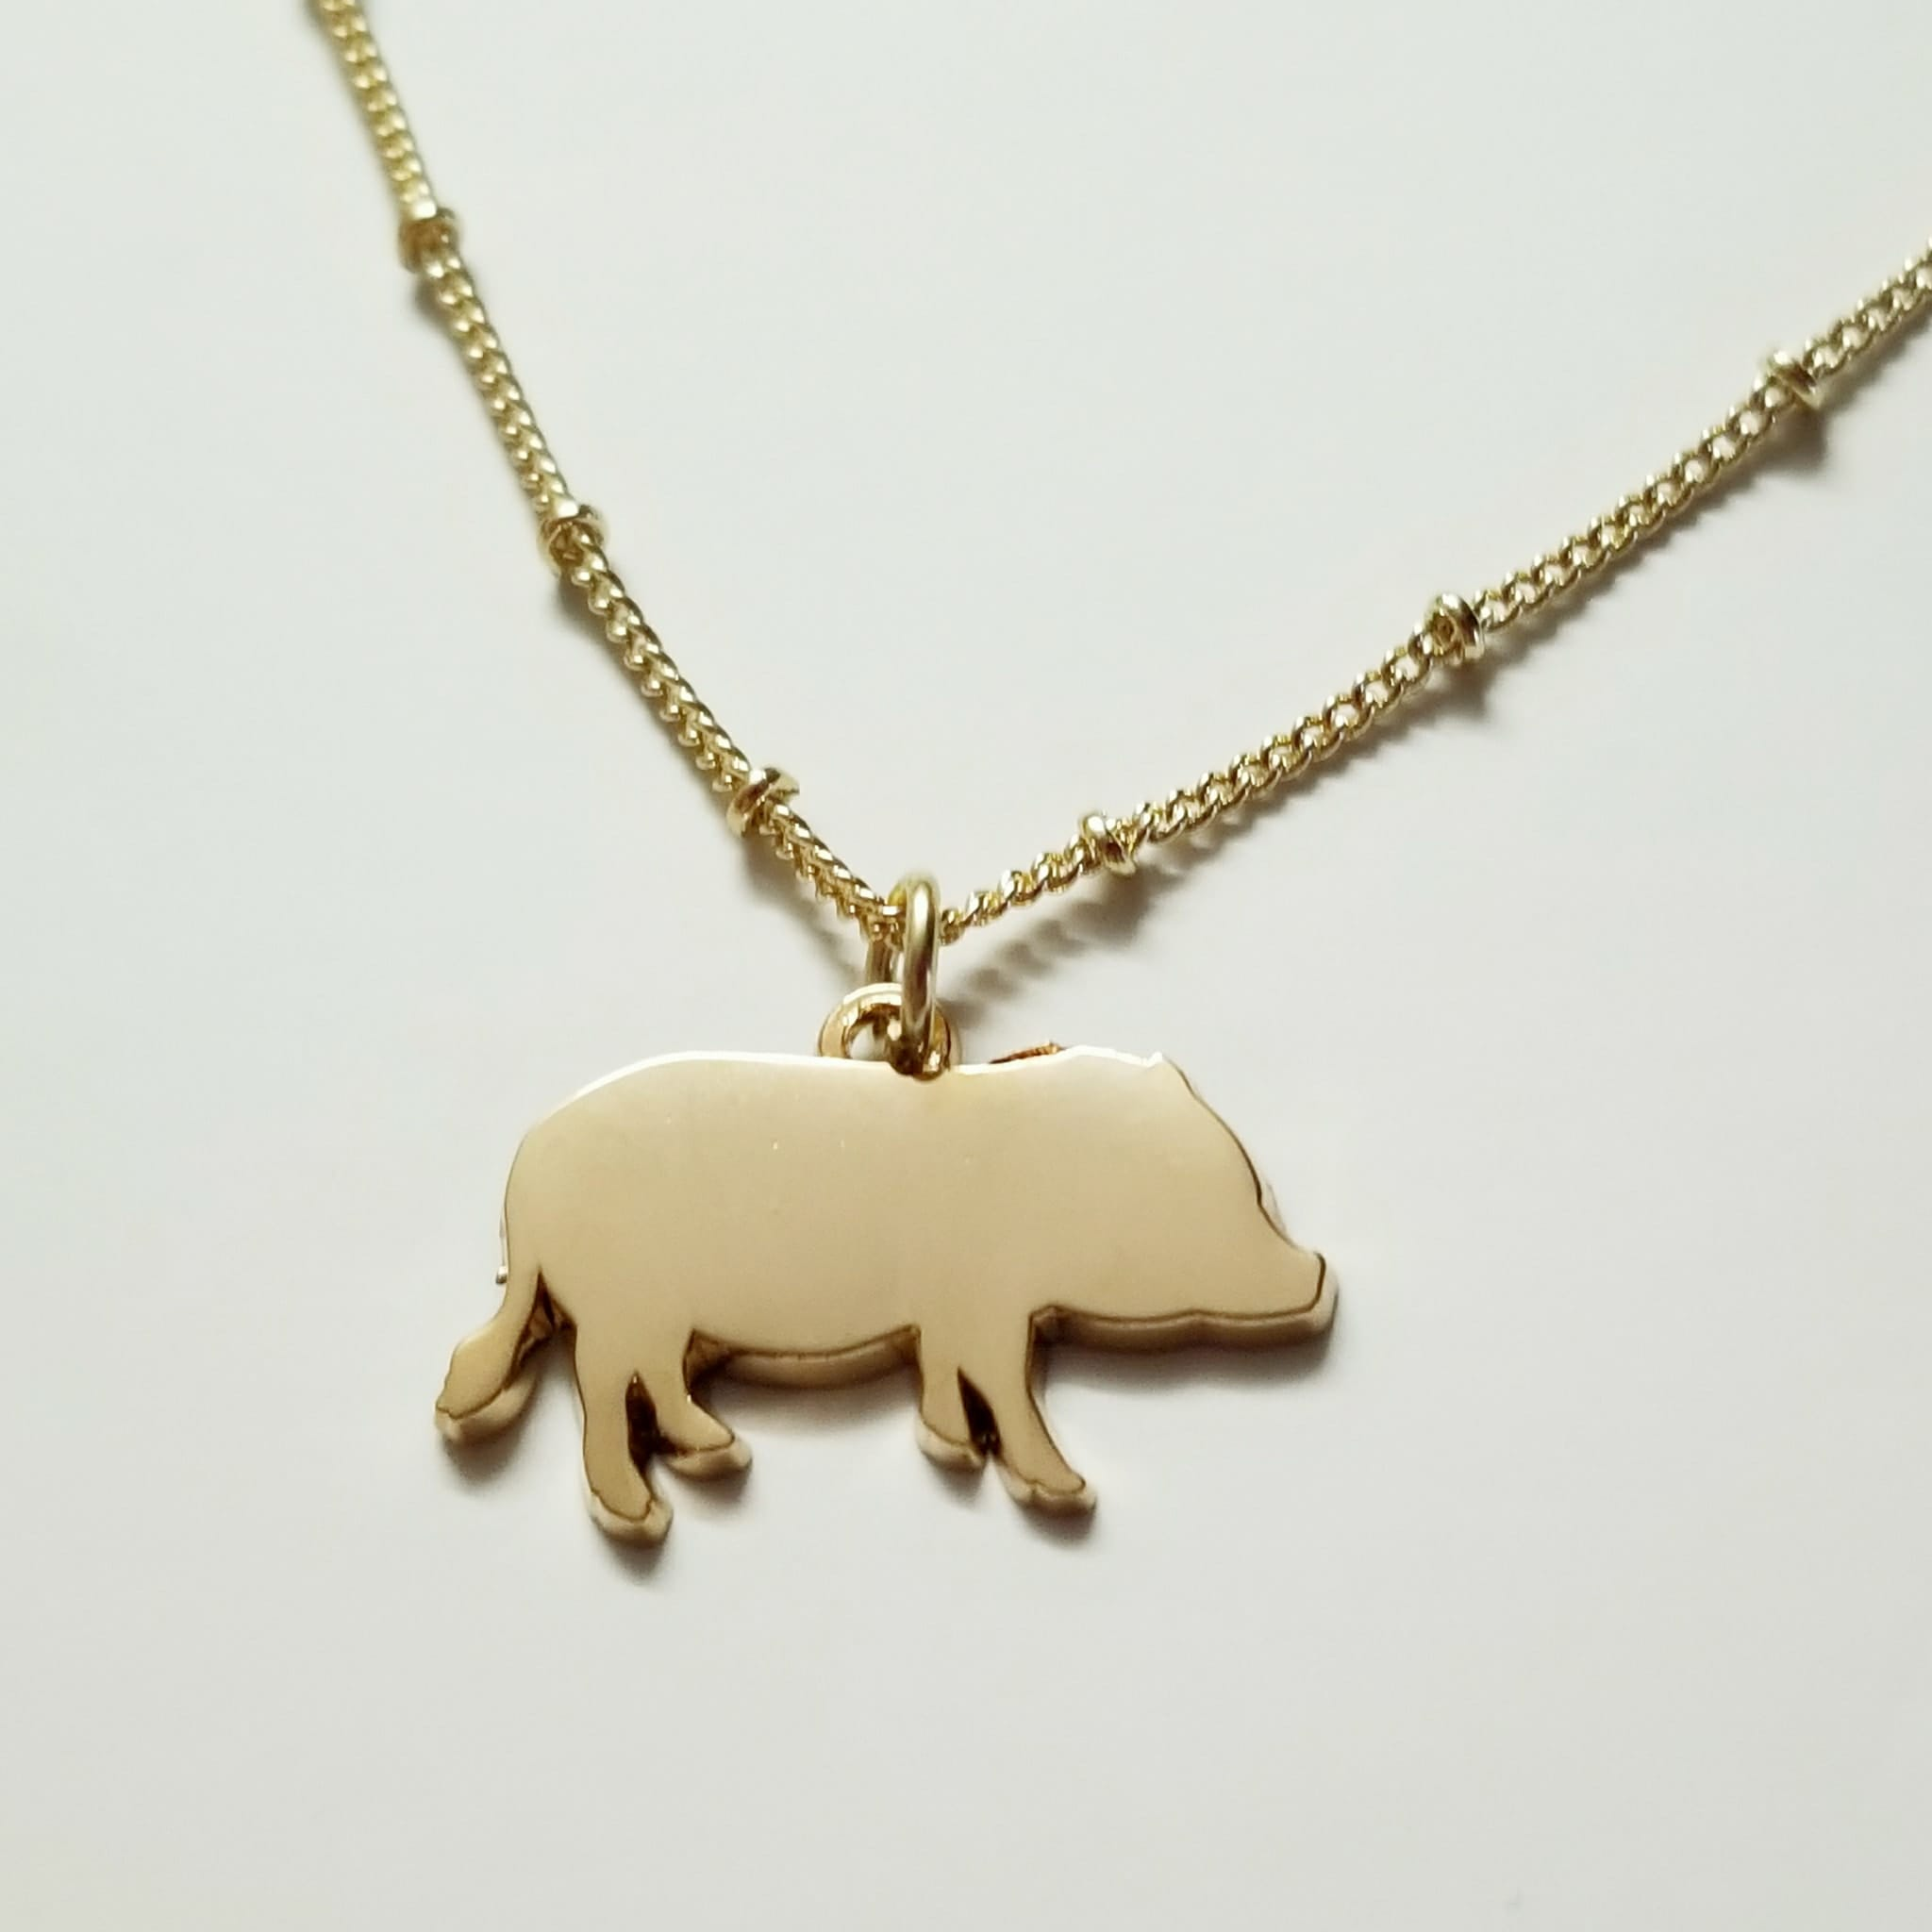 Pig Charm Bracelet: Mini Pig Necklace Or Charm In Silver Or Gold Plated